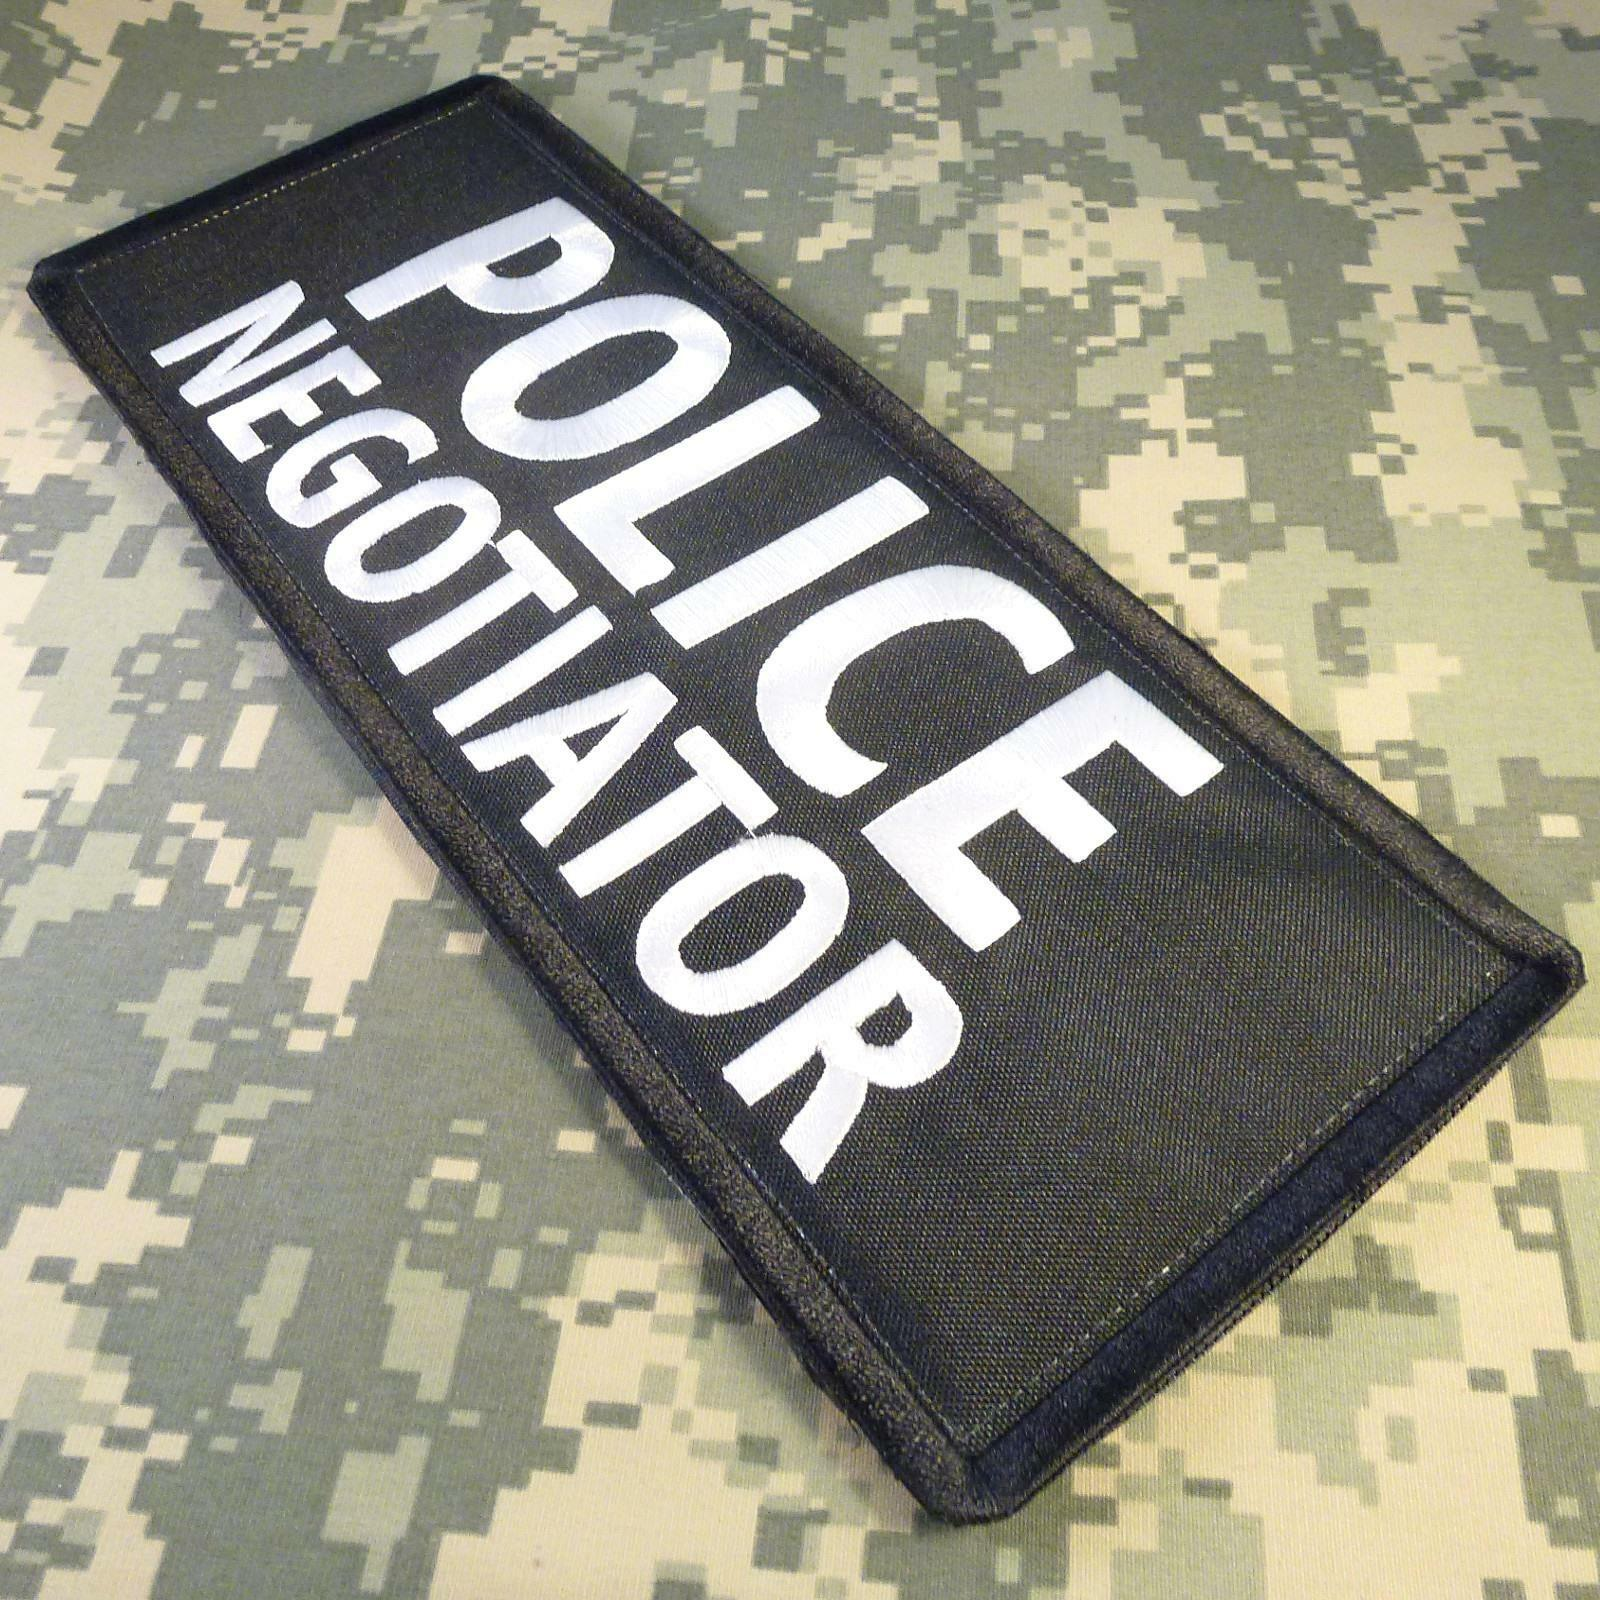 2AFTER1 Security Enforcement Officer Large XL 10x4 Inch Body Armor Tactical Embroidered Fastener Patch